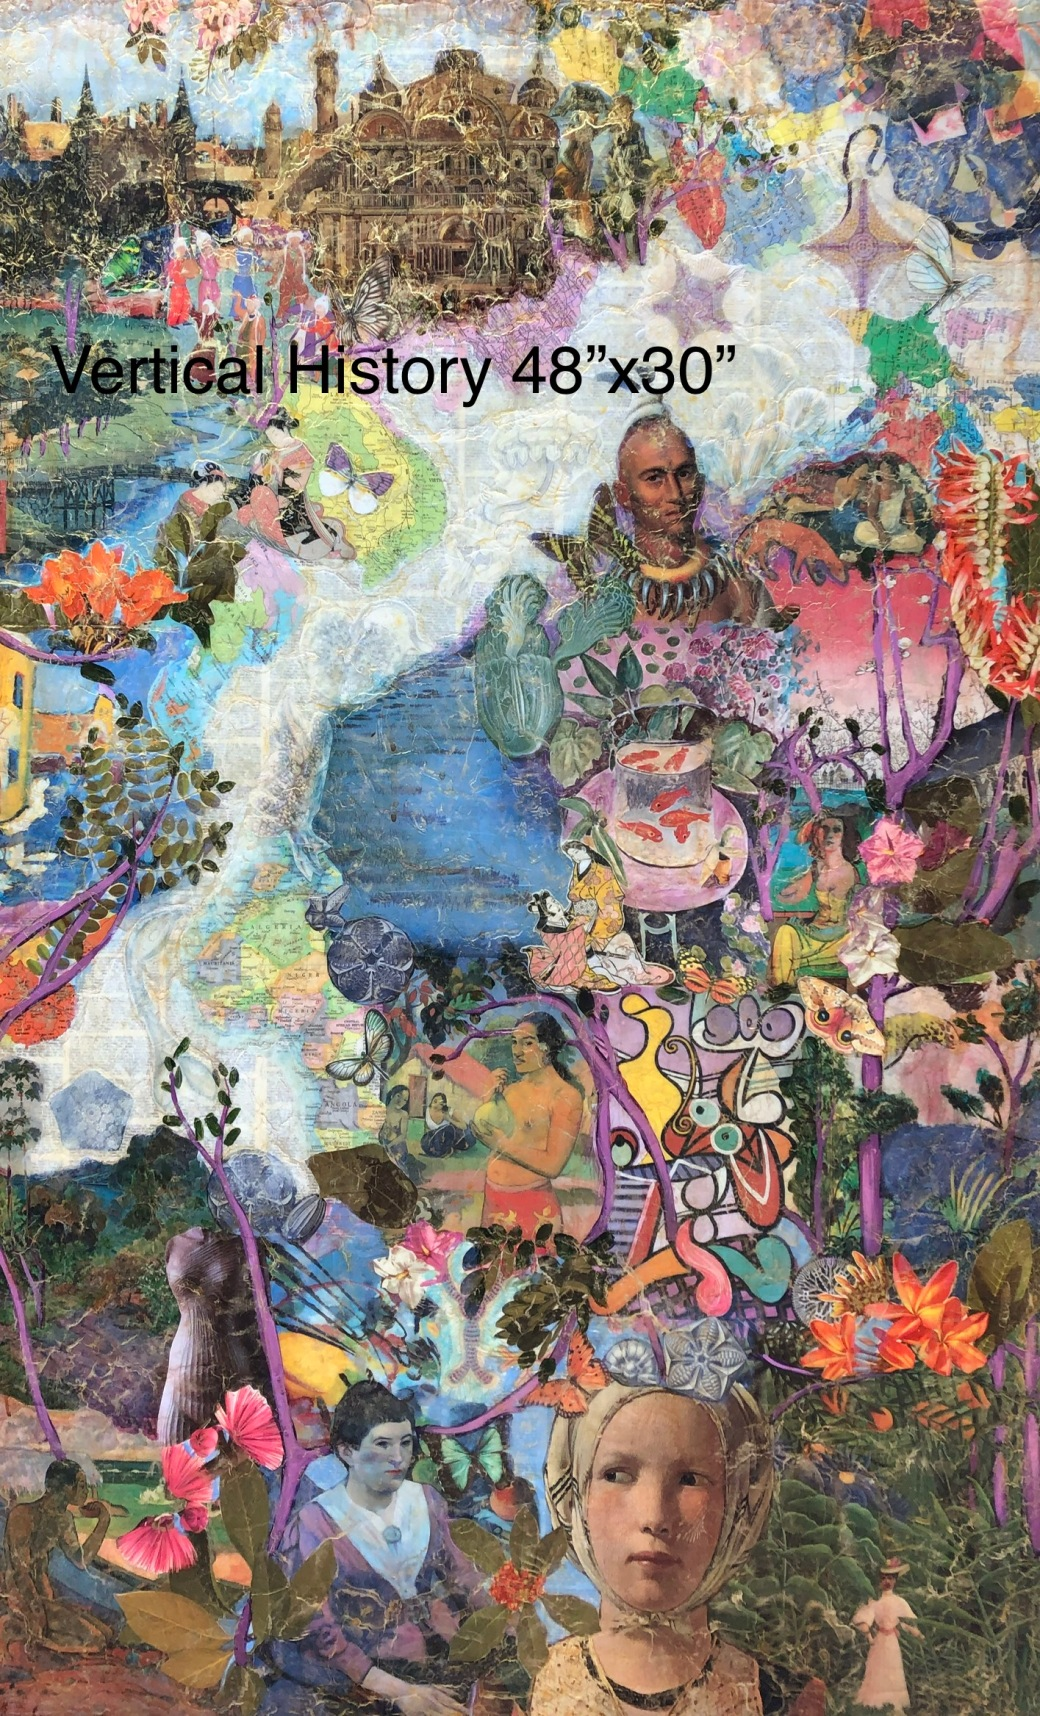 Vertical History 48x30